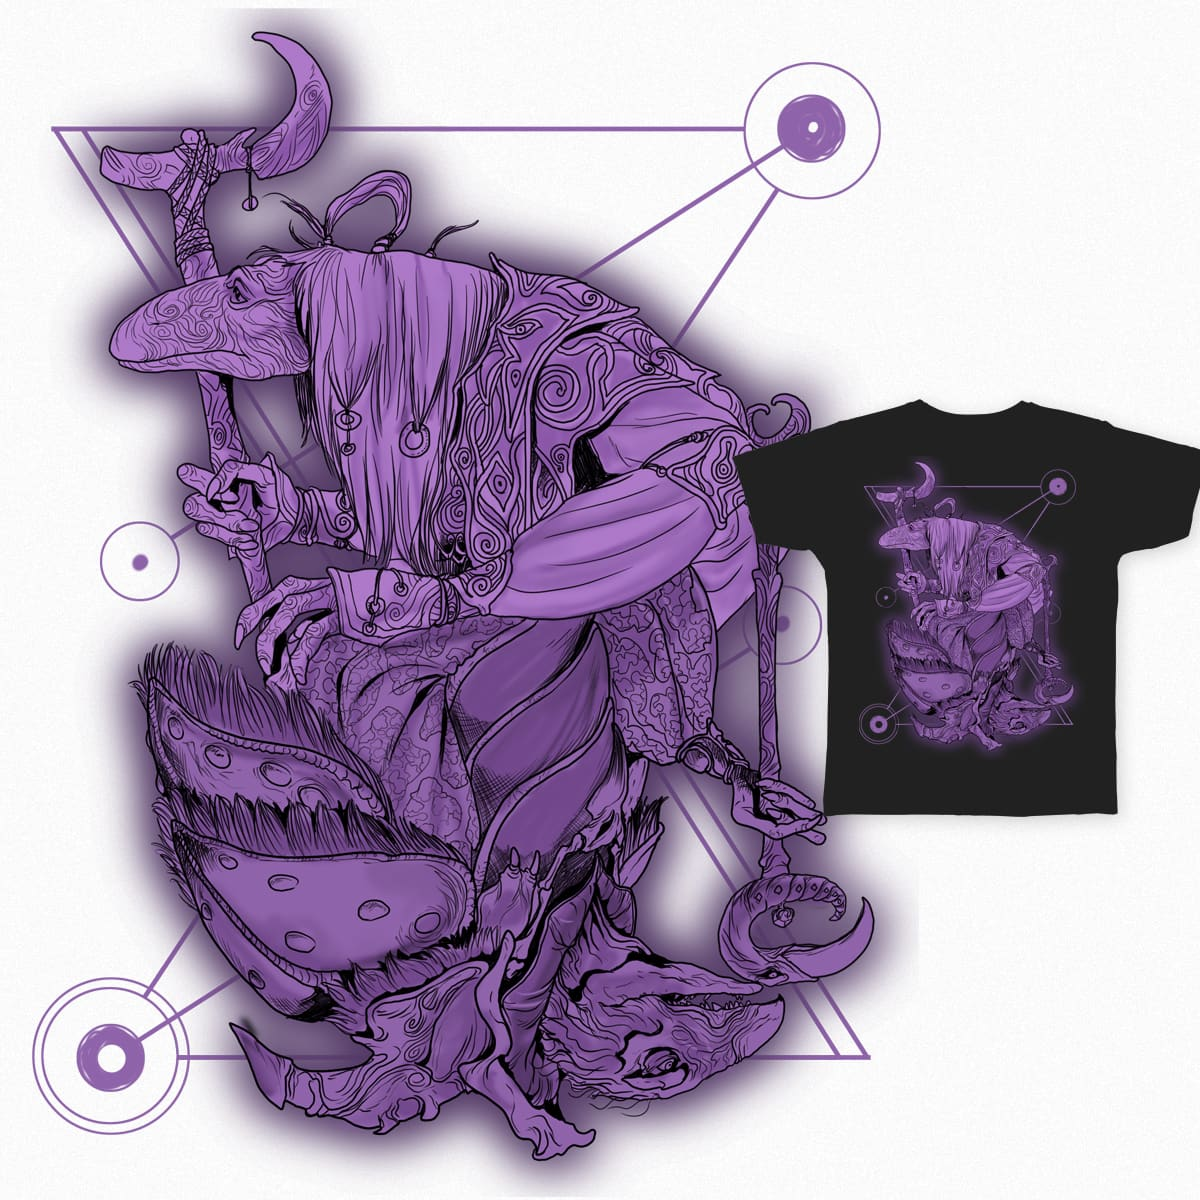 Balance by joetoro on Threadless